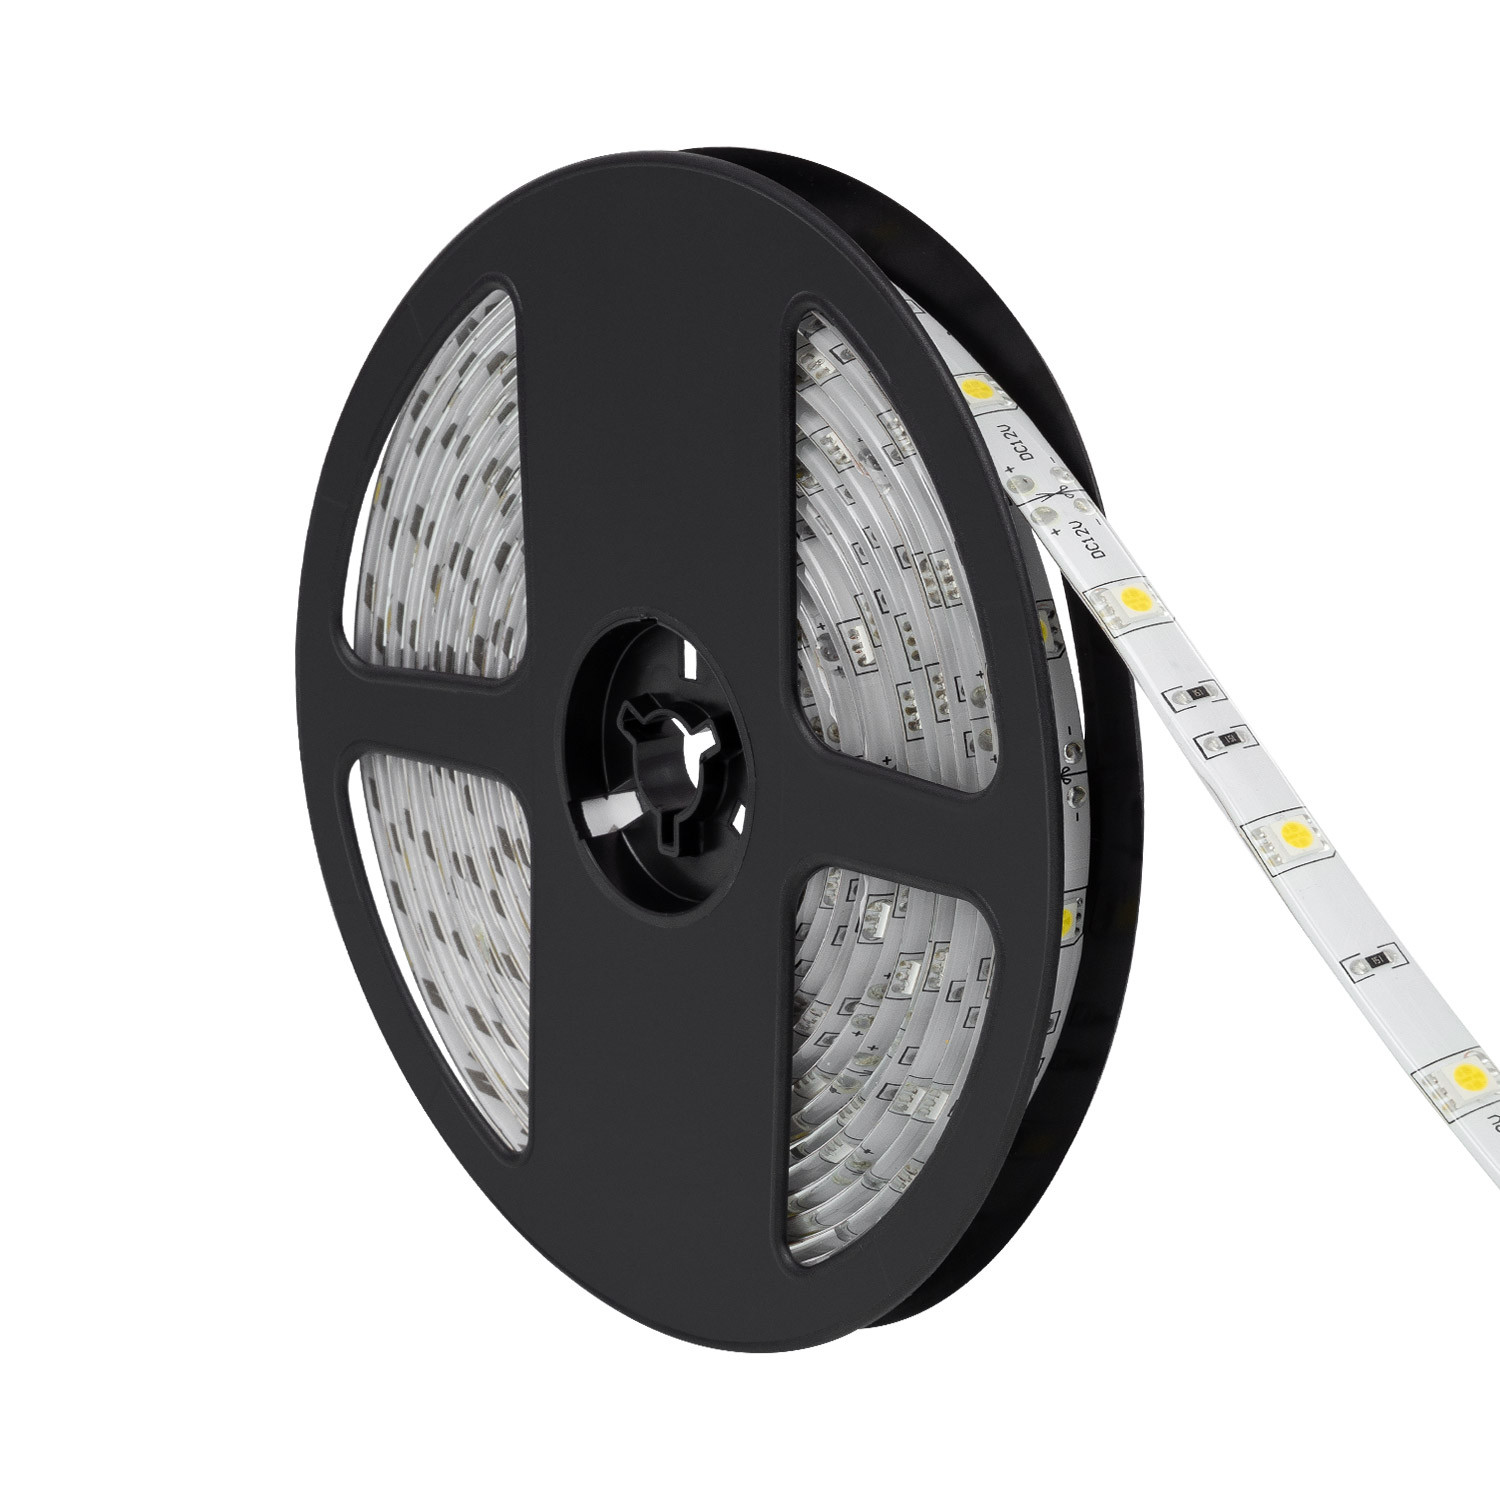 LED Strip 12V DC SMD5050 30LED/m 5m IP65